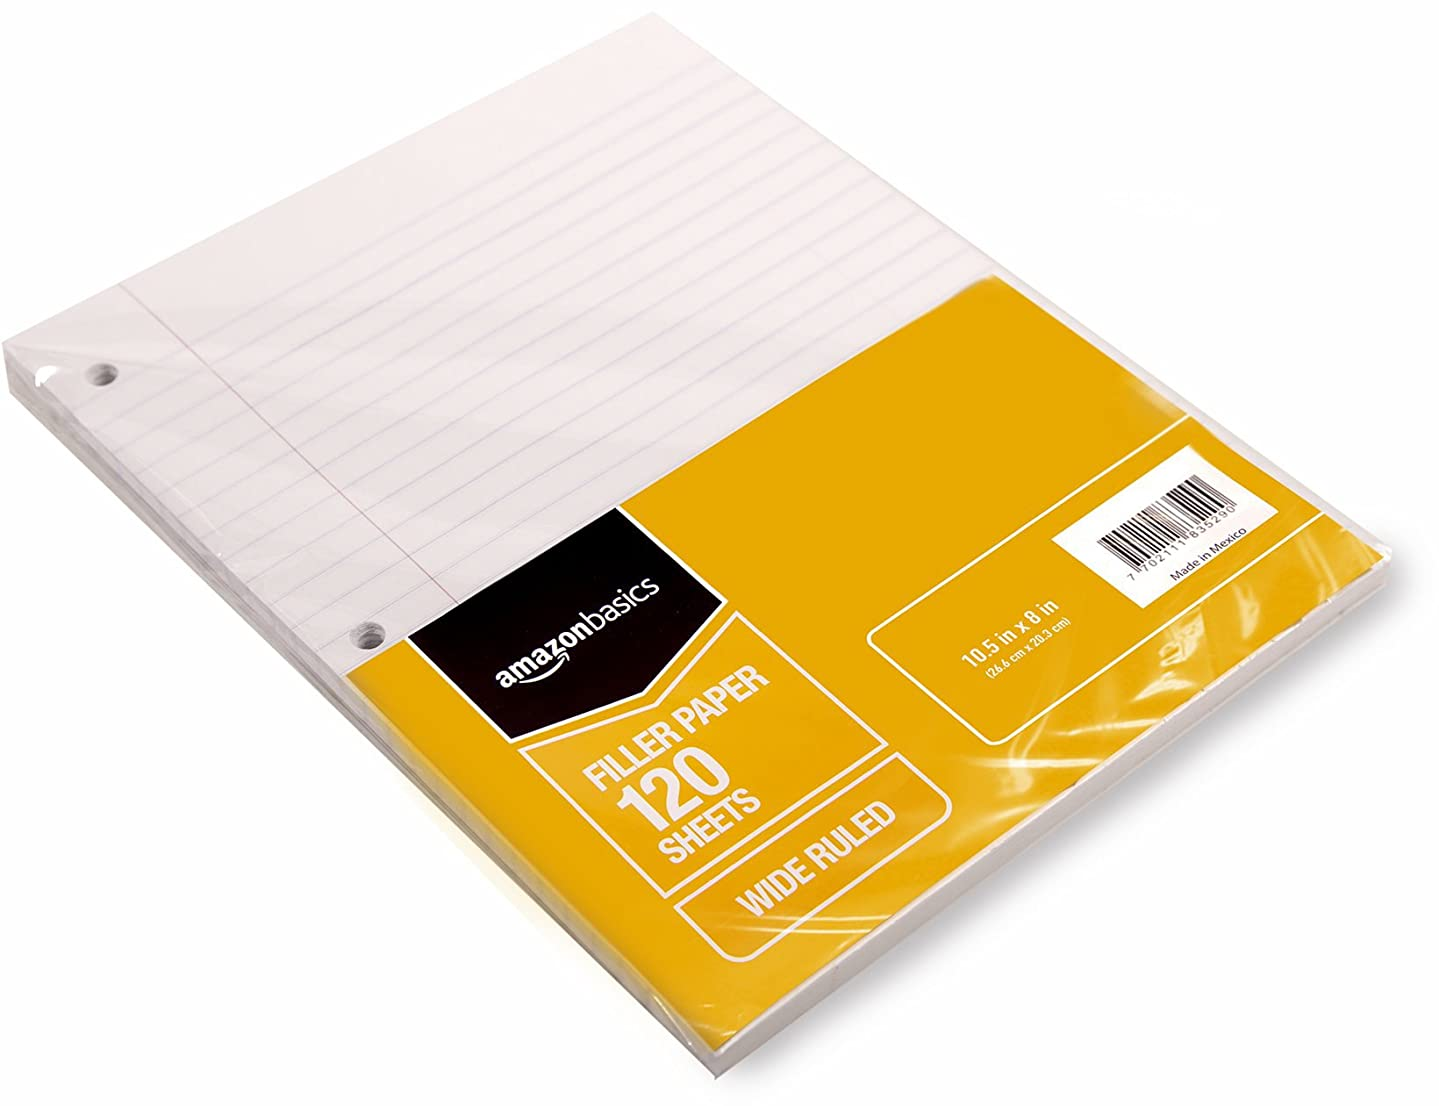 AmazonBasics Wide Ruled Loose Leaf Filler Paper, 120 Sheet, 10.5 x 8 Inch, 6-Pack